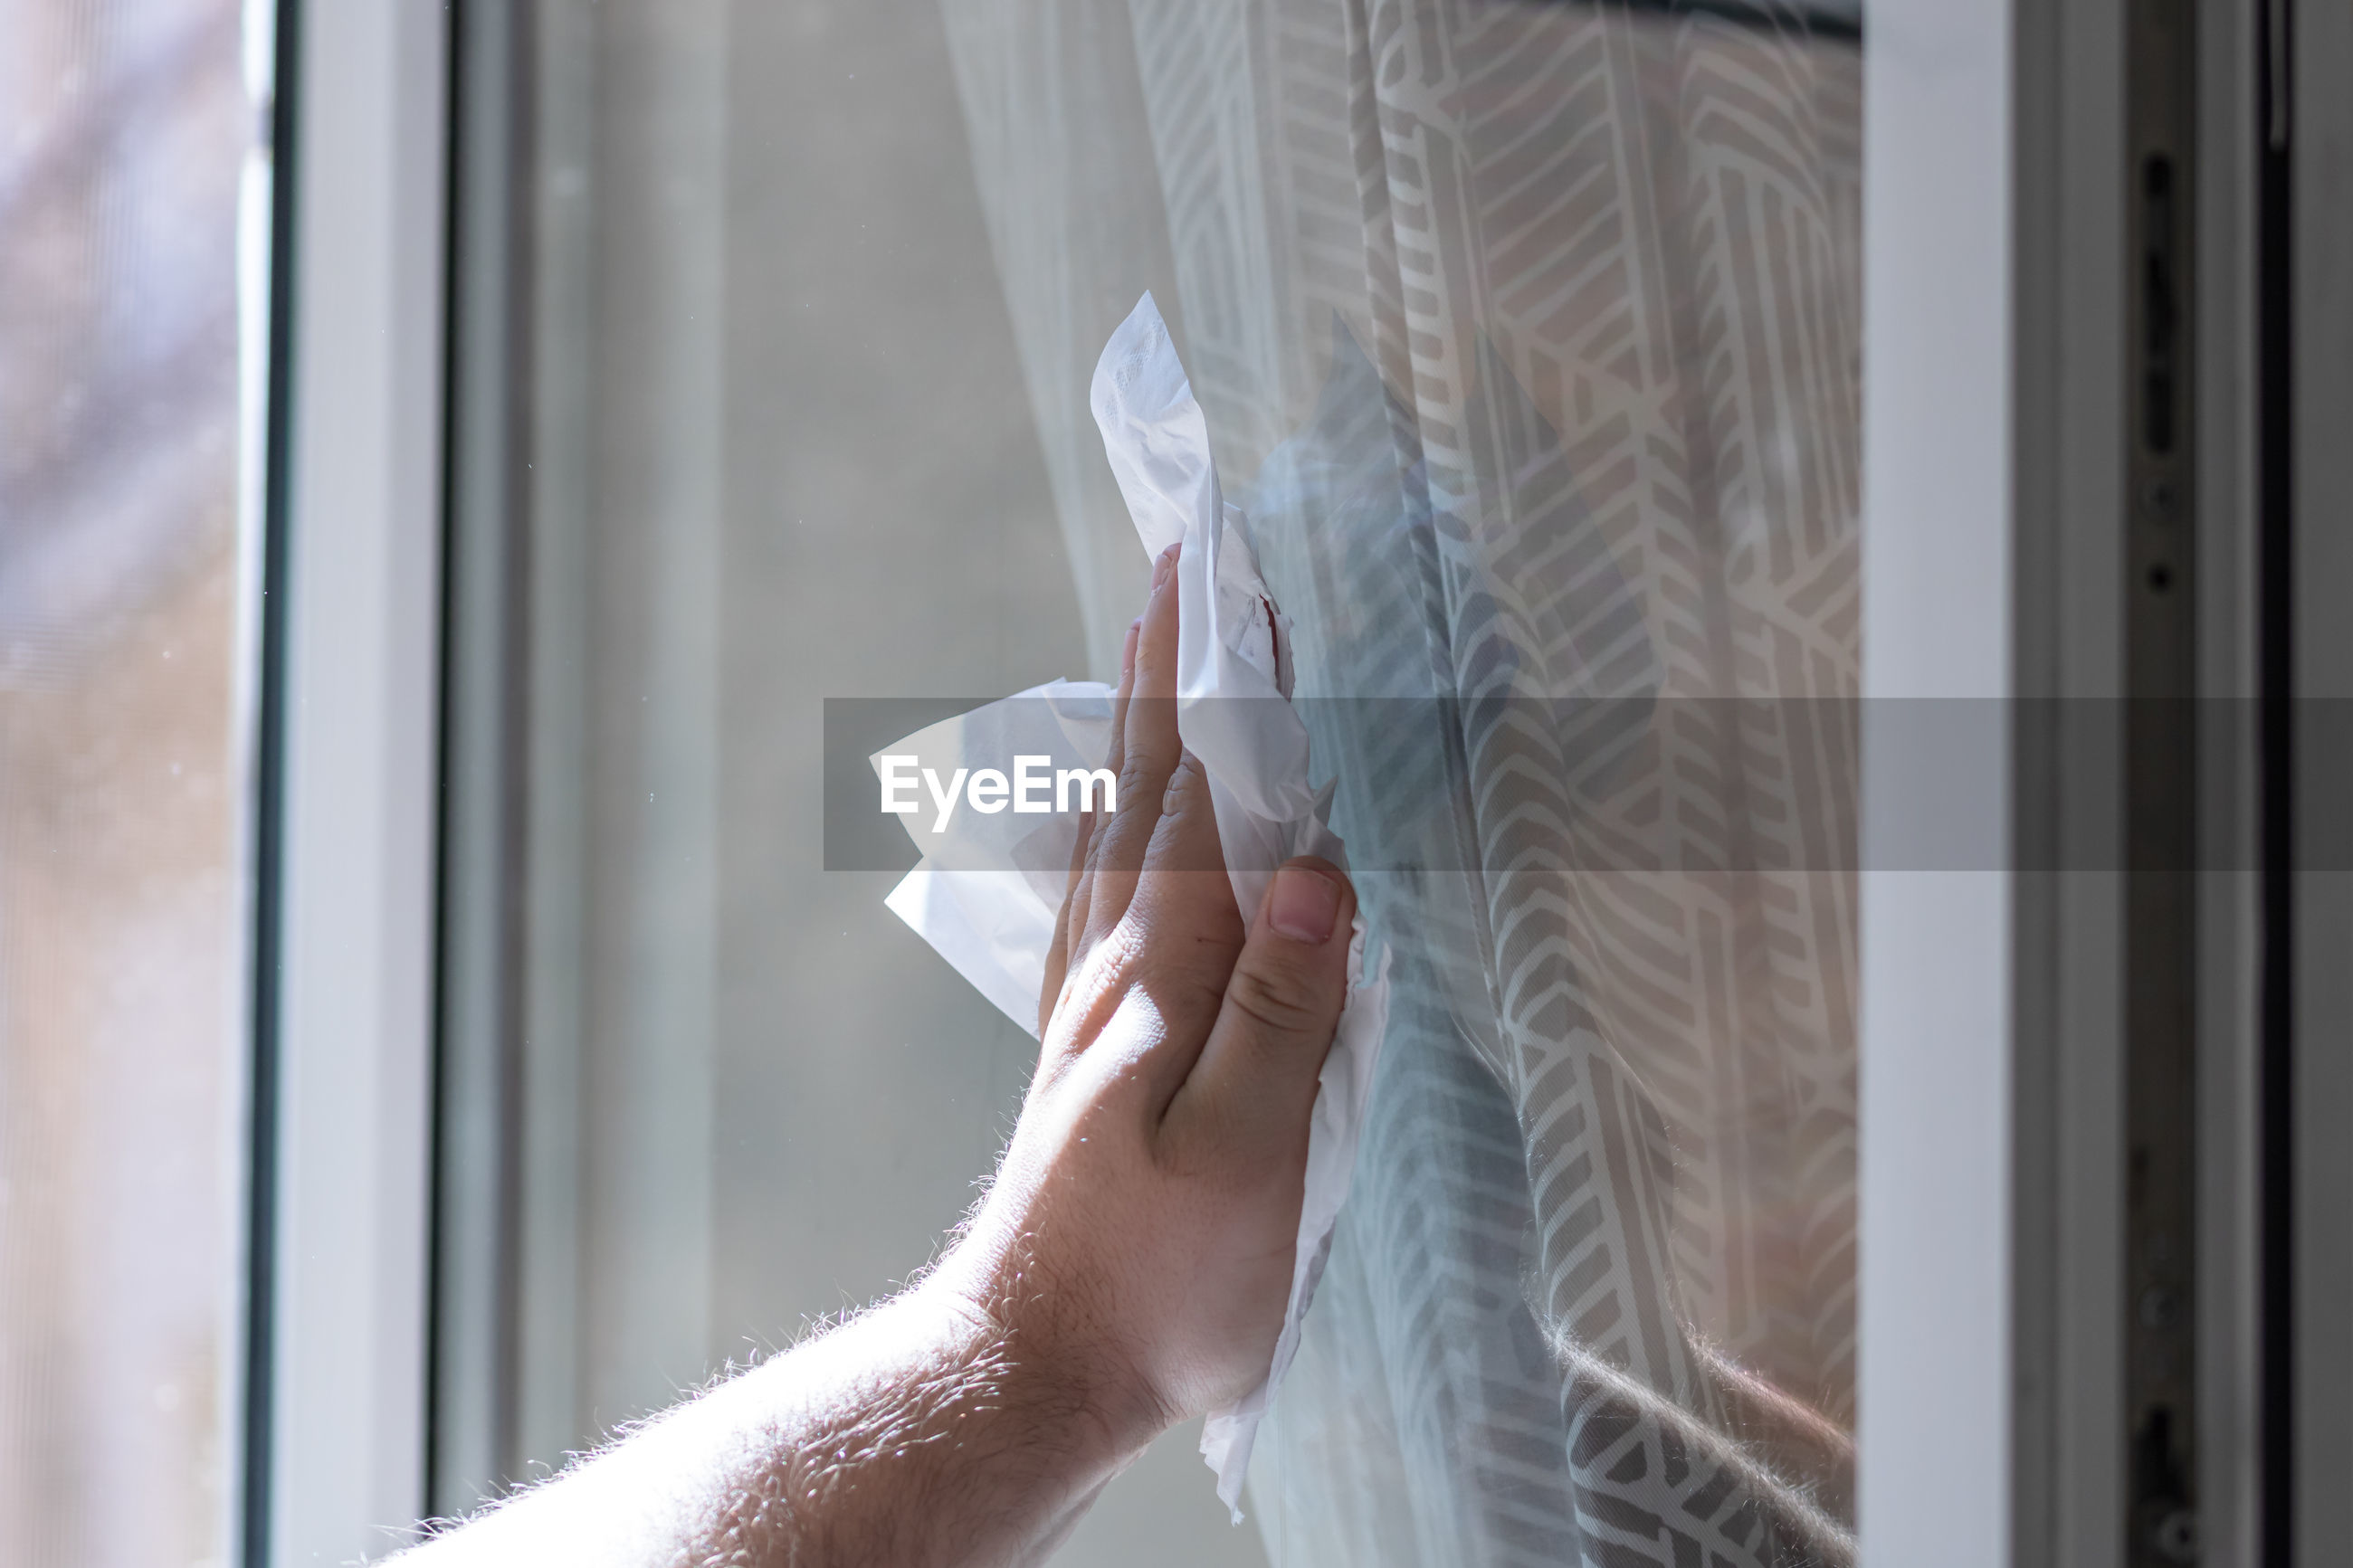 Midsection of person holding paper against window